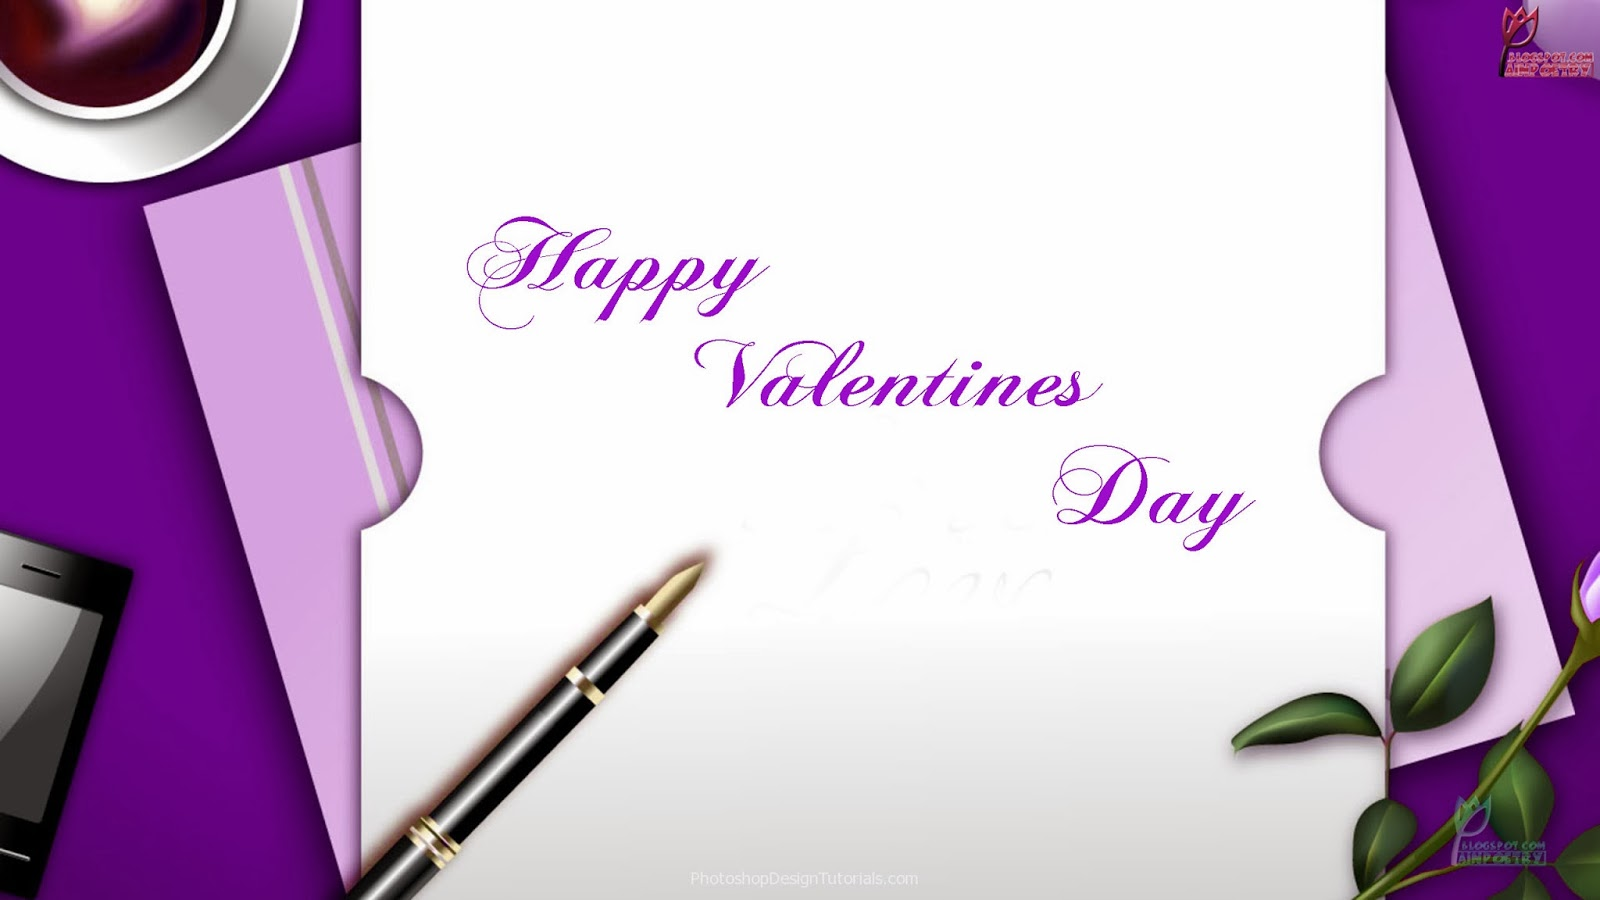 Happy-Valentines-Day-Wishes-Wallpaper-With-Pen-And-Notpad-Image-HD-Wide